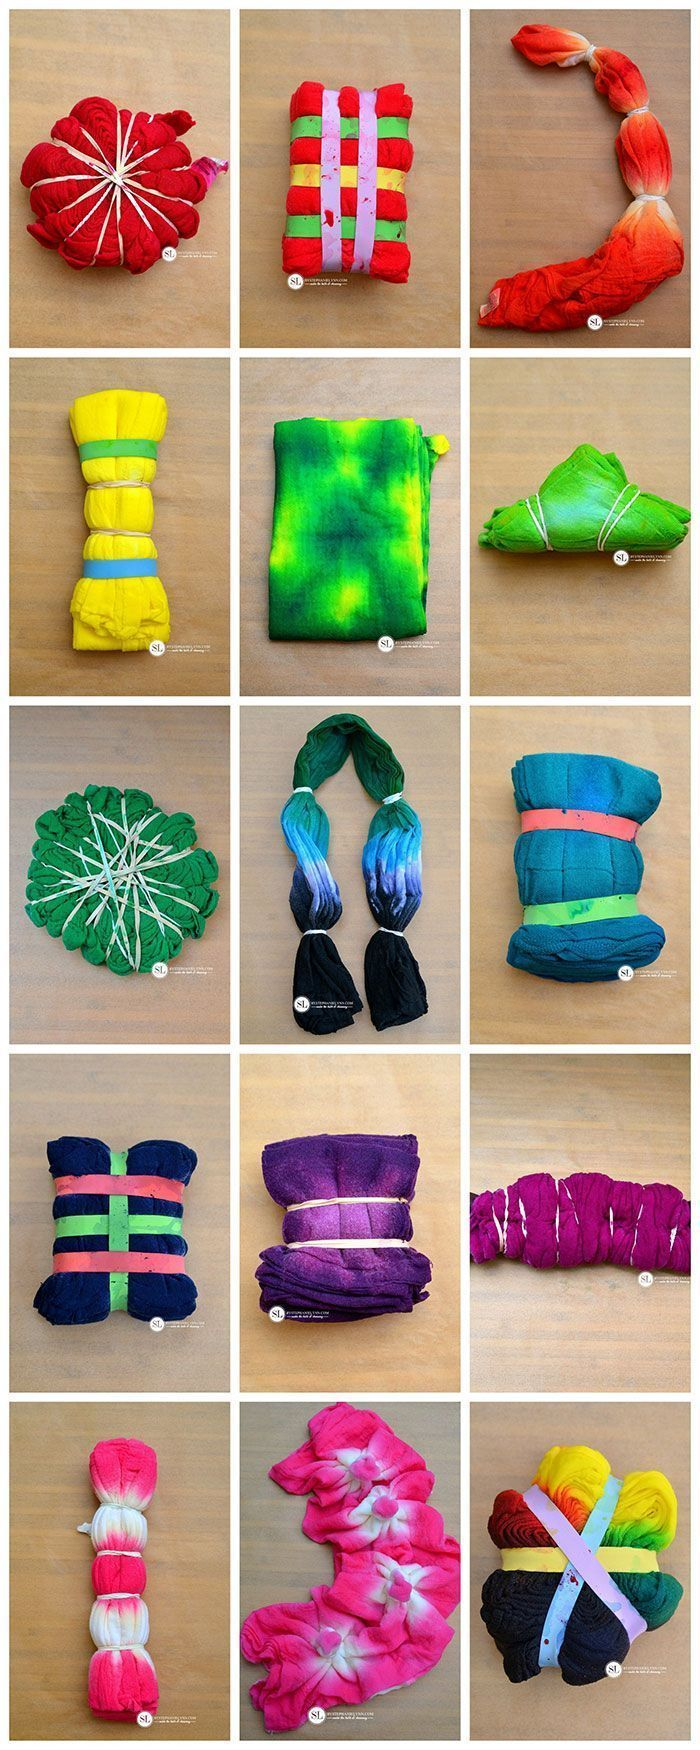 Teinture Tissu Tie Dye Folding Techniques Must Try Pinterest Teinture